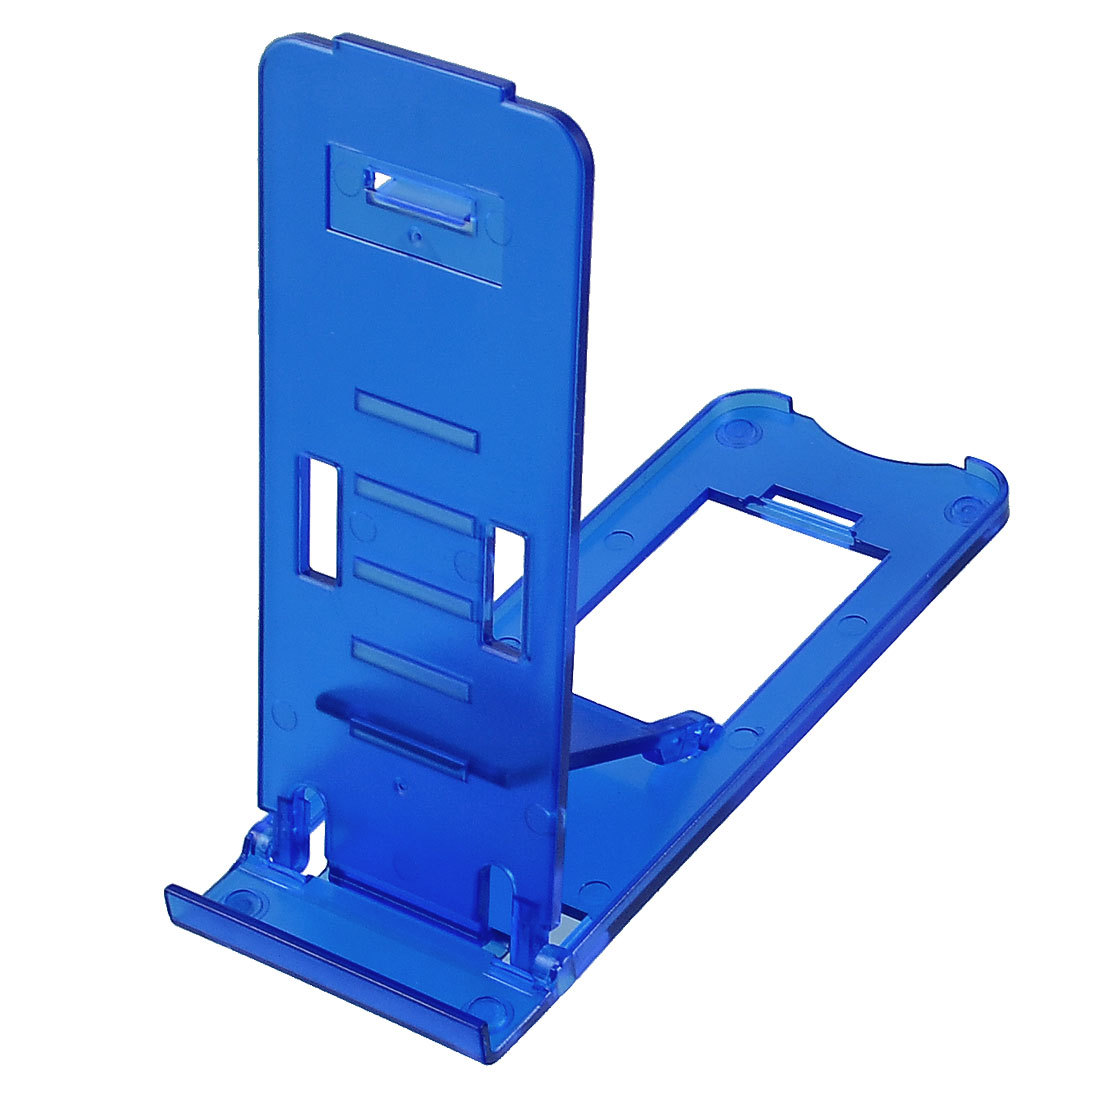 Desk Teal Blue Plastic Foldable Stand Bracket for Tablet PCs